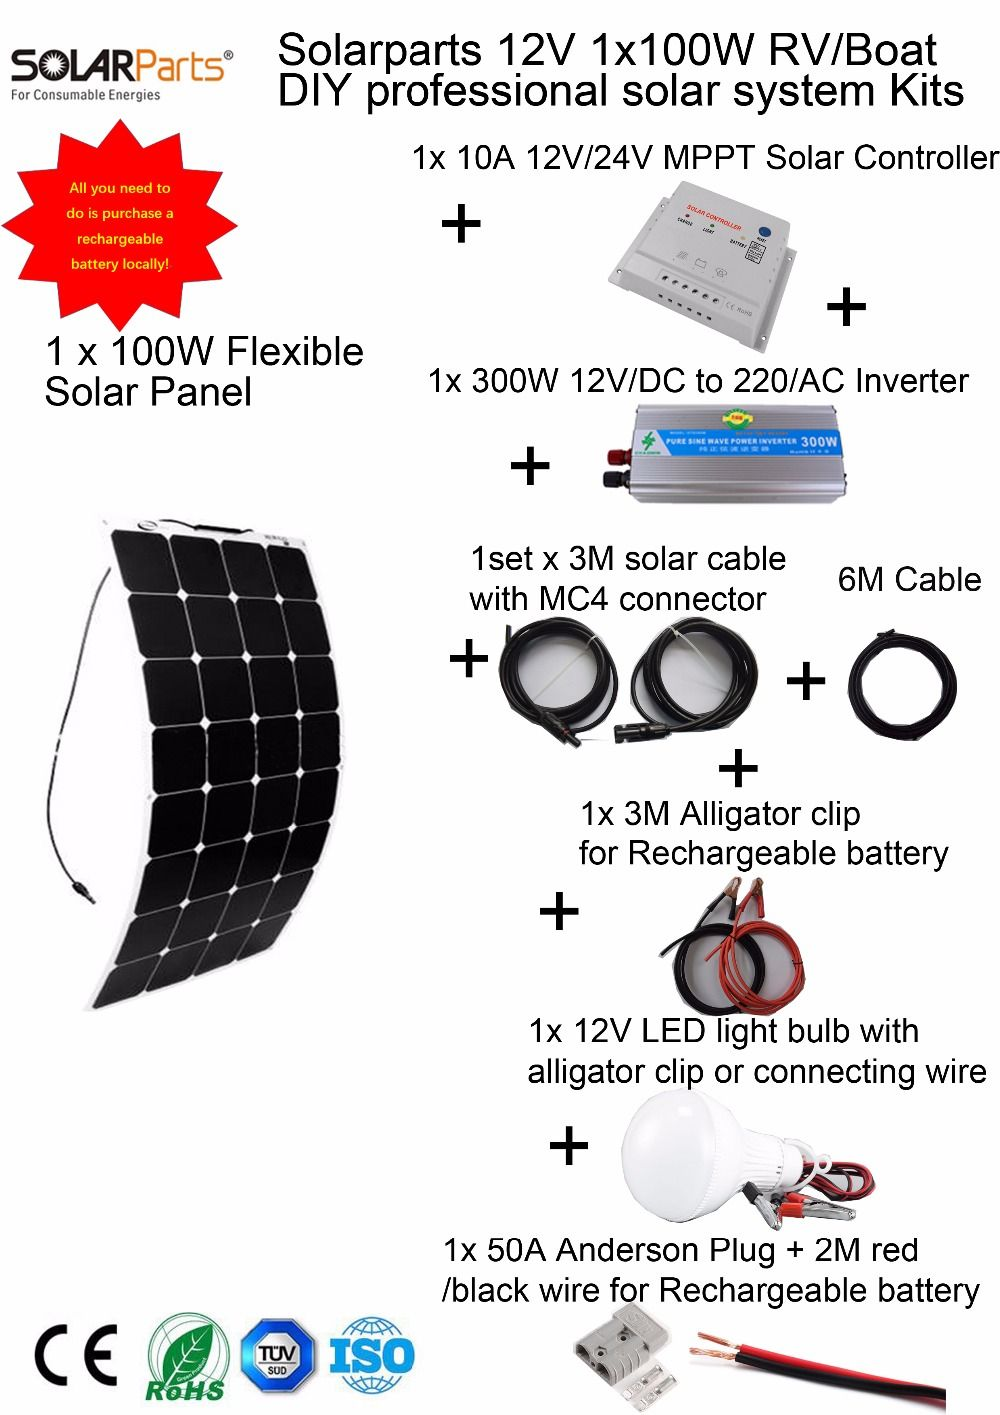 Solarparts 1x100w Professional Diy Rv Boat Marine Kits Solar Home House Battery Wiring System 100w Flexible Panel Mppt Controller Inverter Led